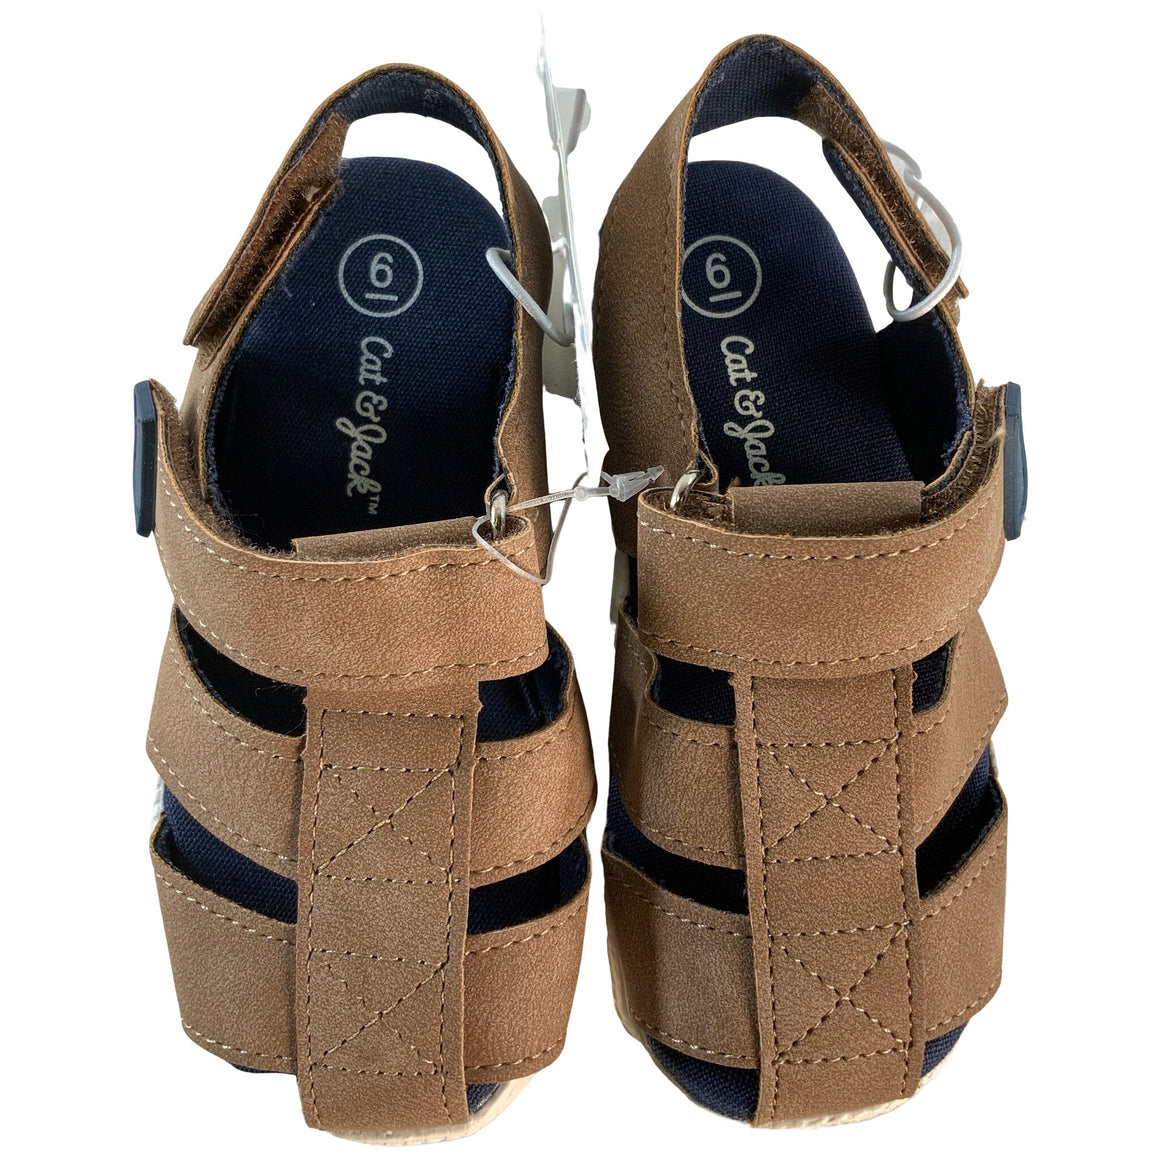 Toddler Boys' Herschel Fisherman Sandals - Brown 6 - Cat & Jack™